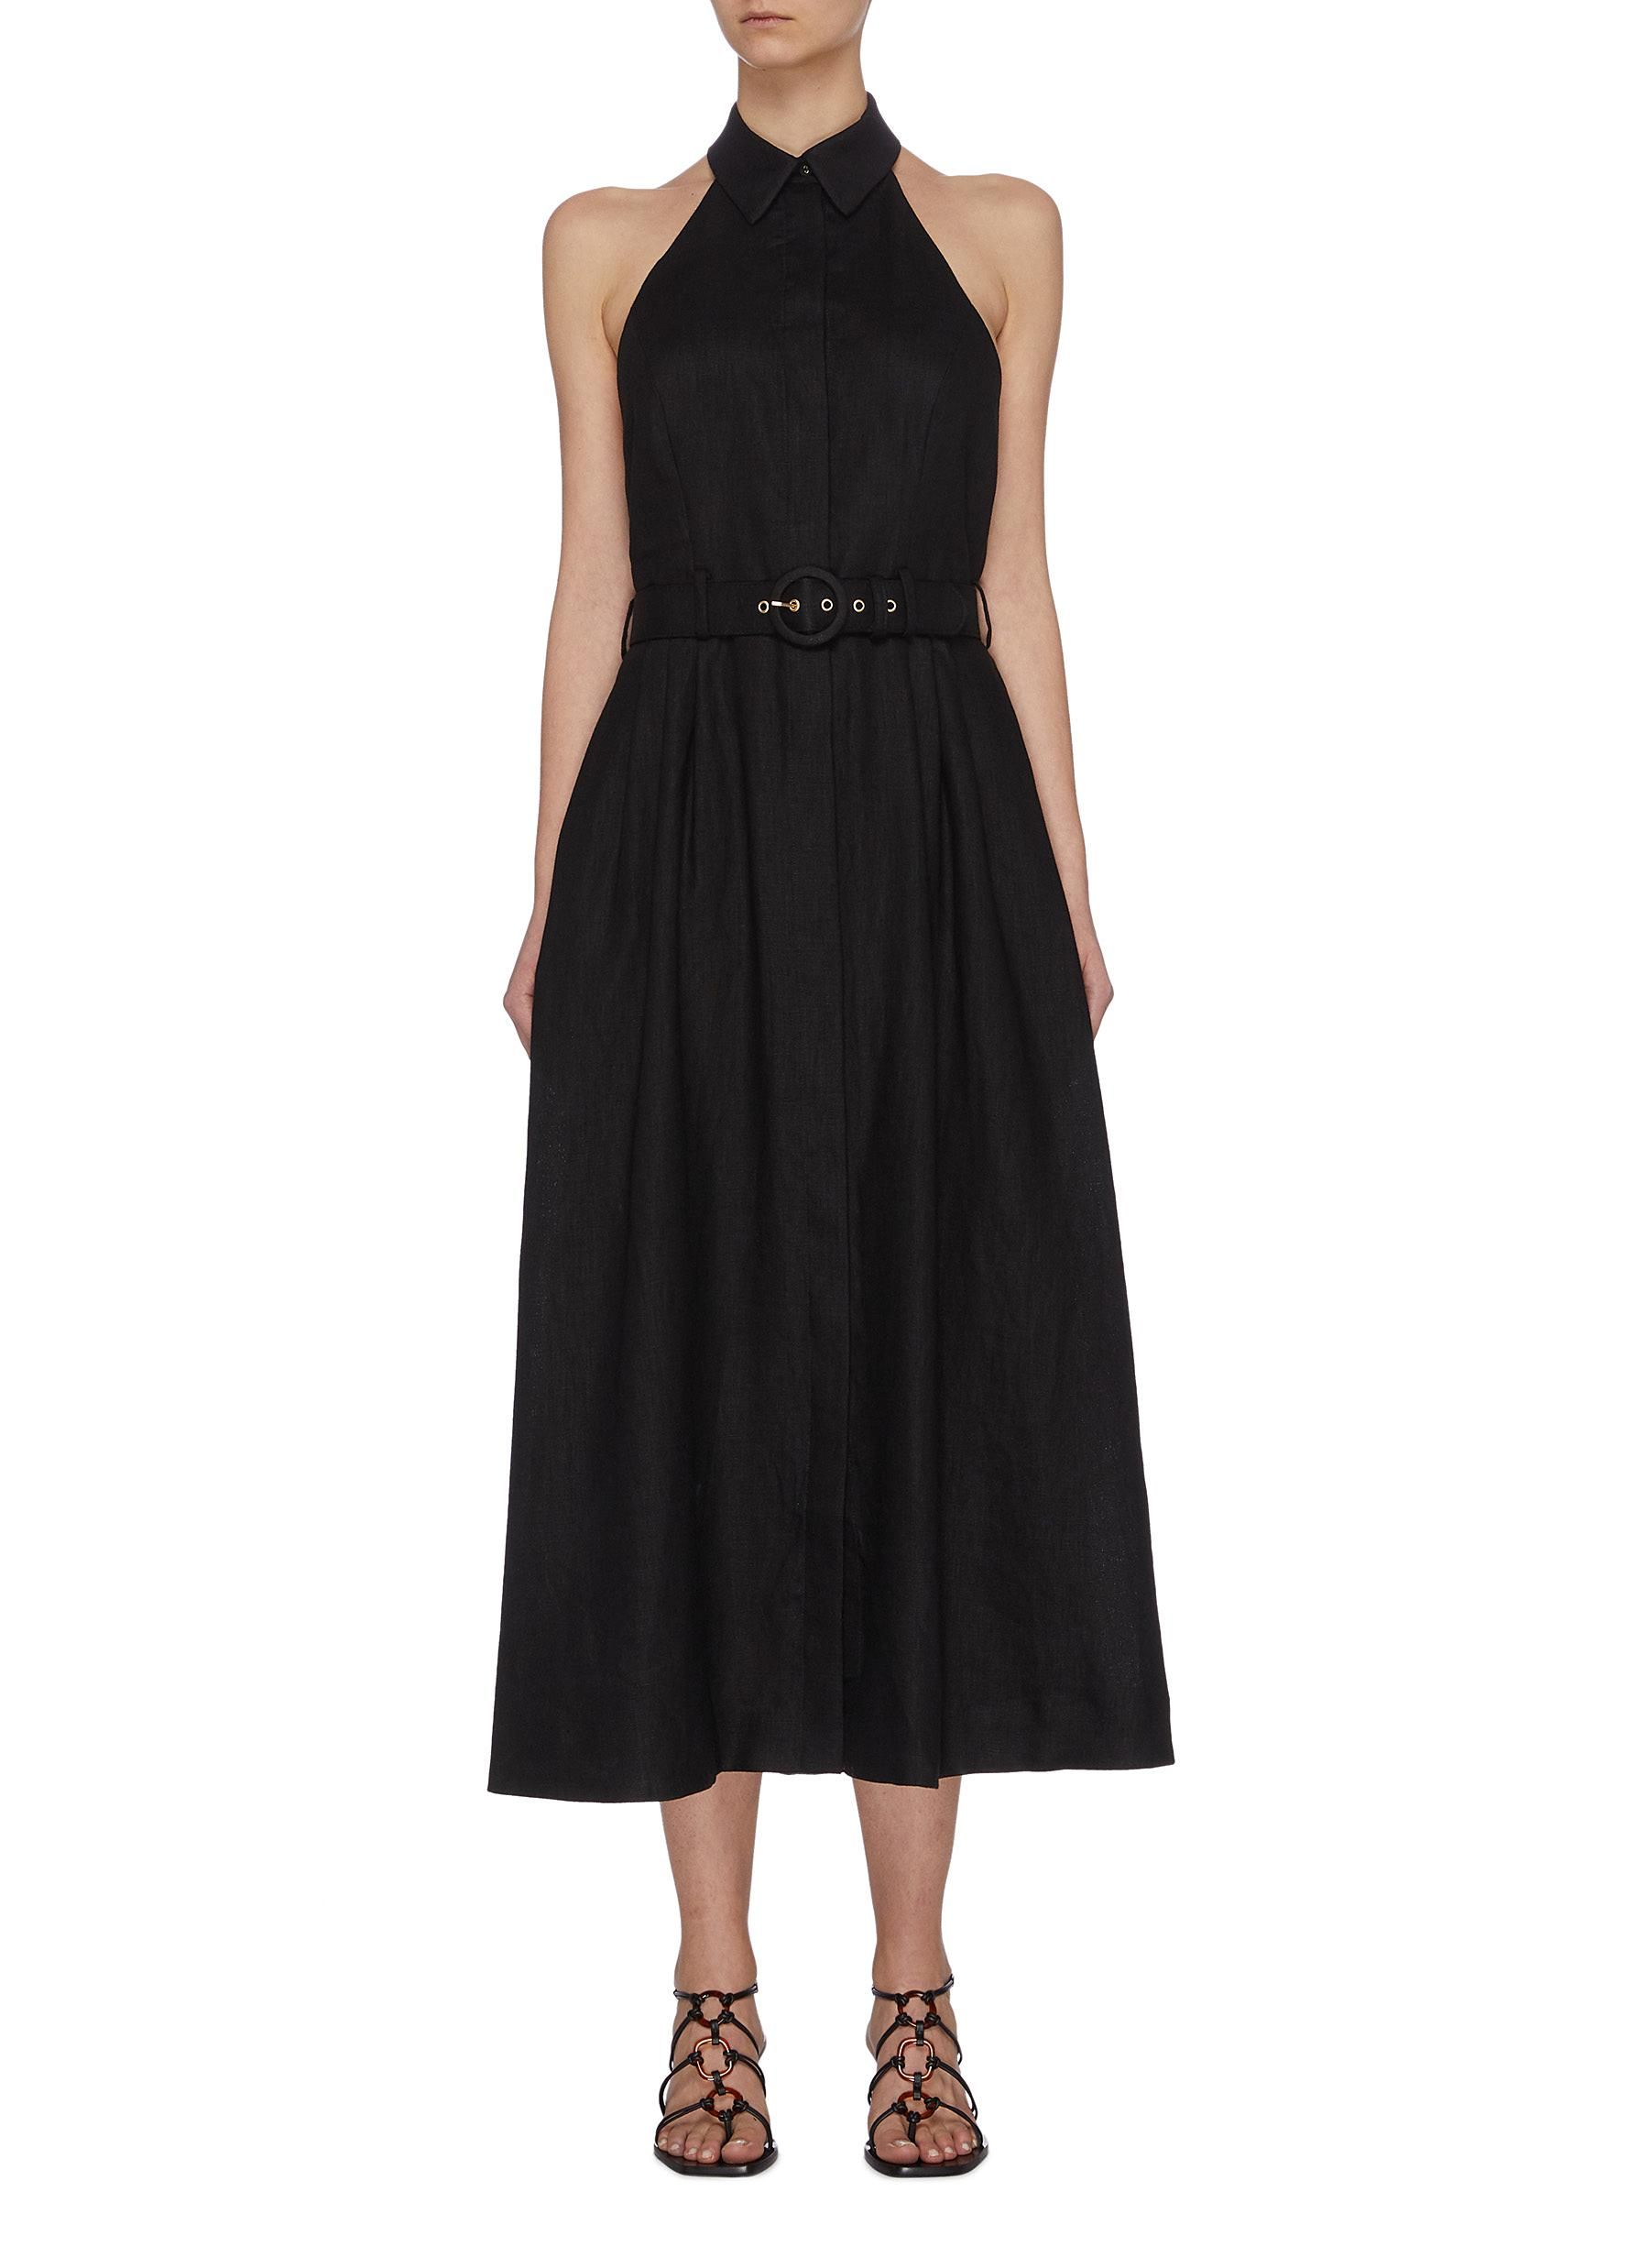 Buy Zimmermann Dresses 'Bonita' halterneck long dress